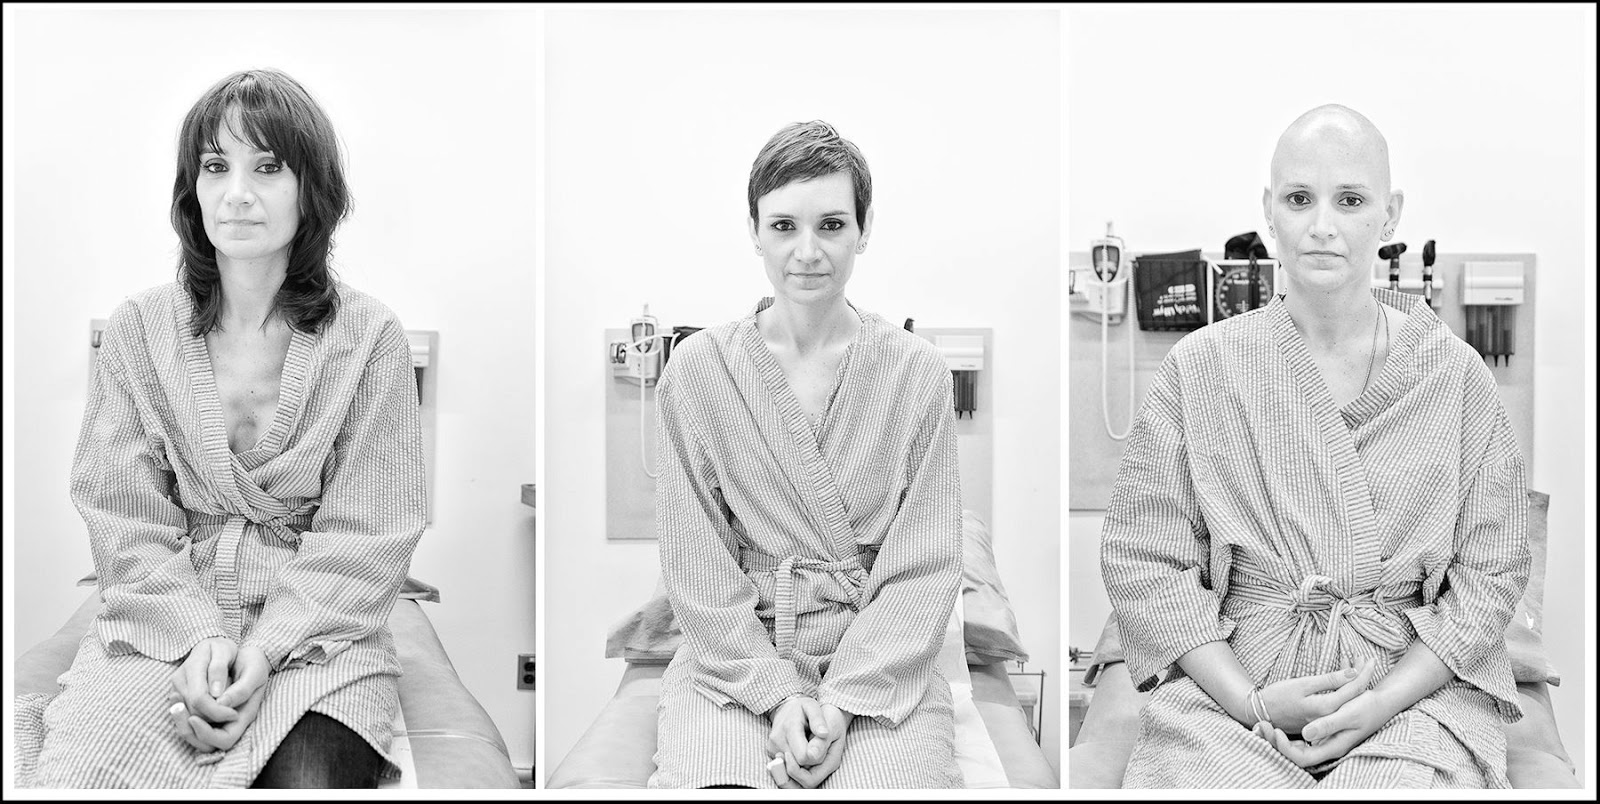 photo essay on breast cancer